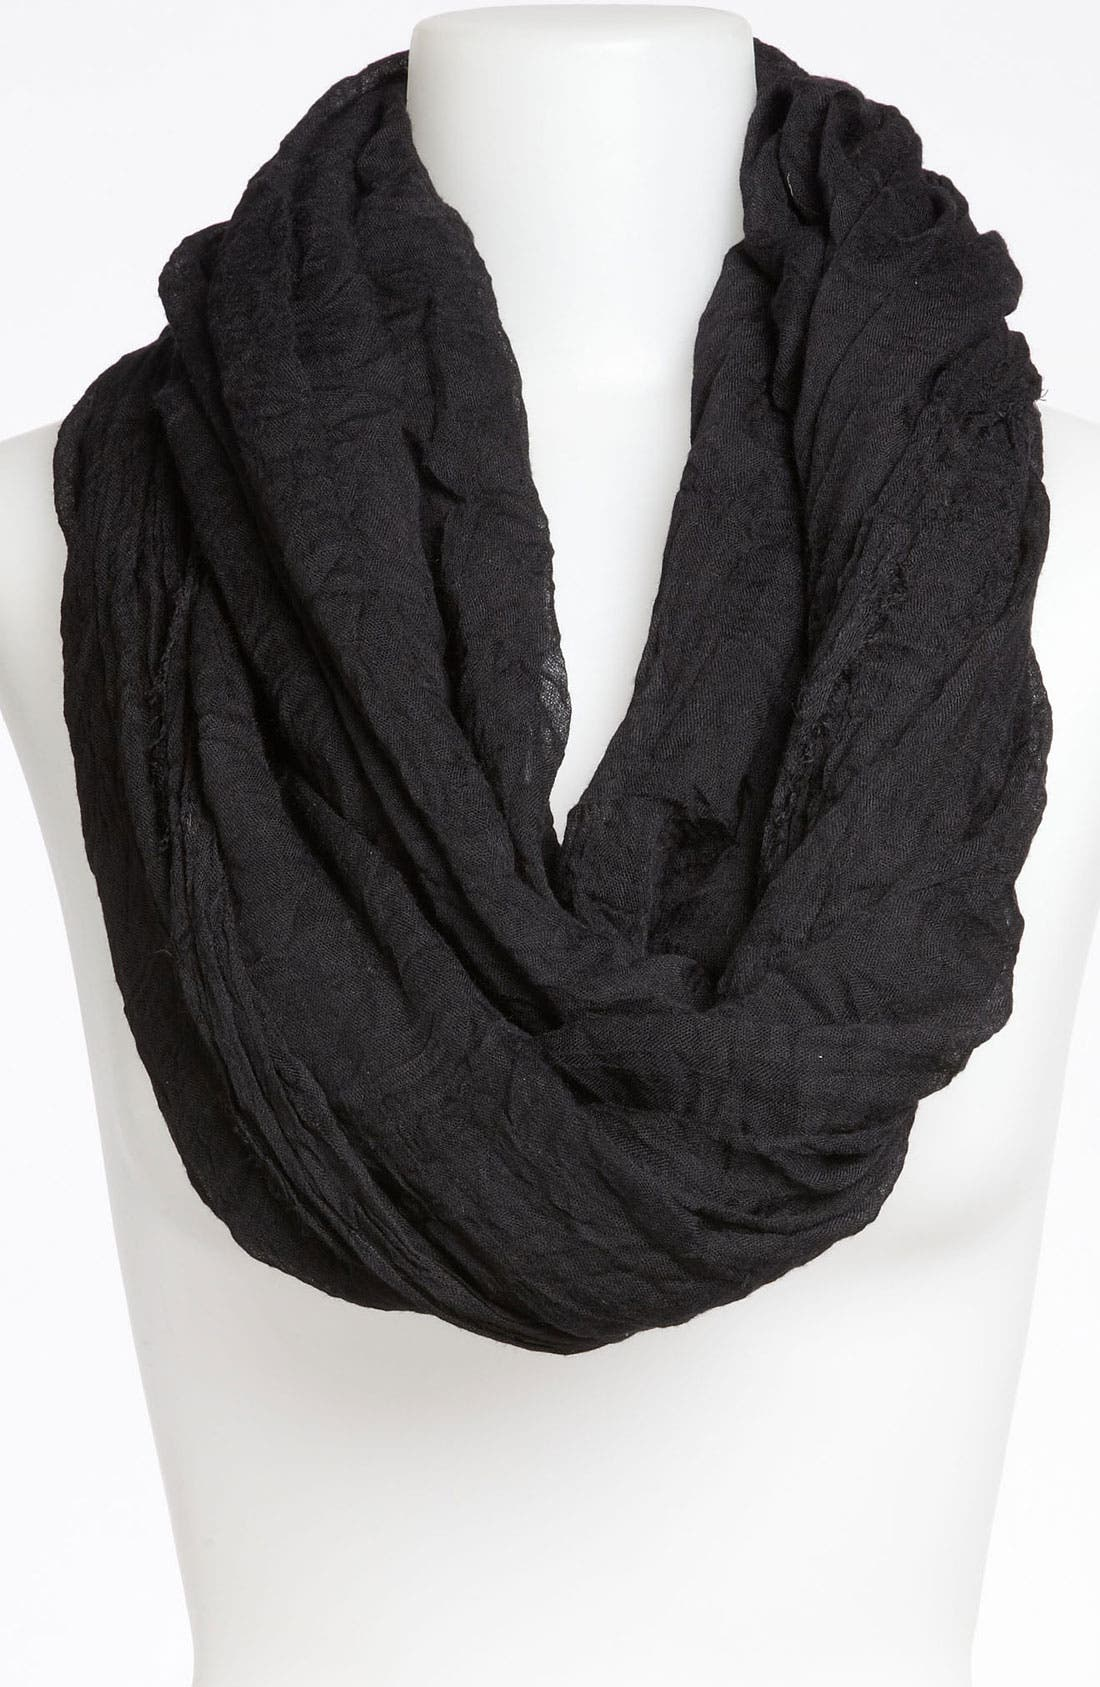 'The Ringer' Infinity Scarf, Main, color, 001